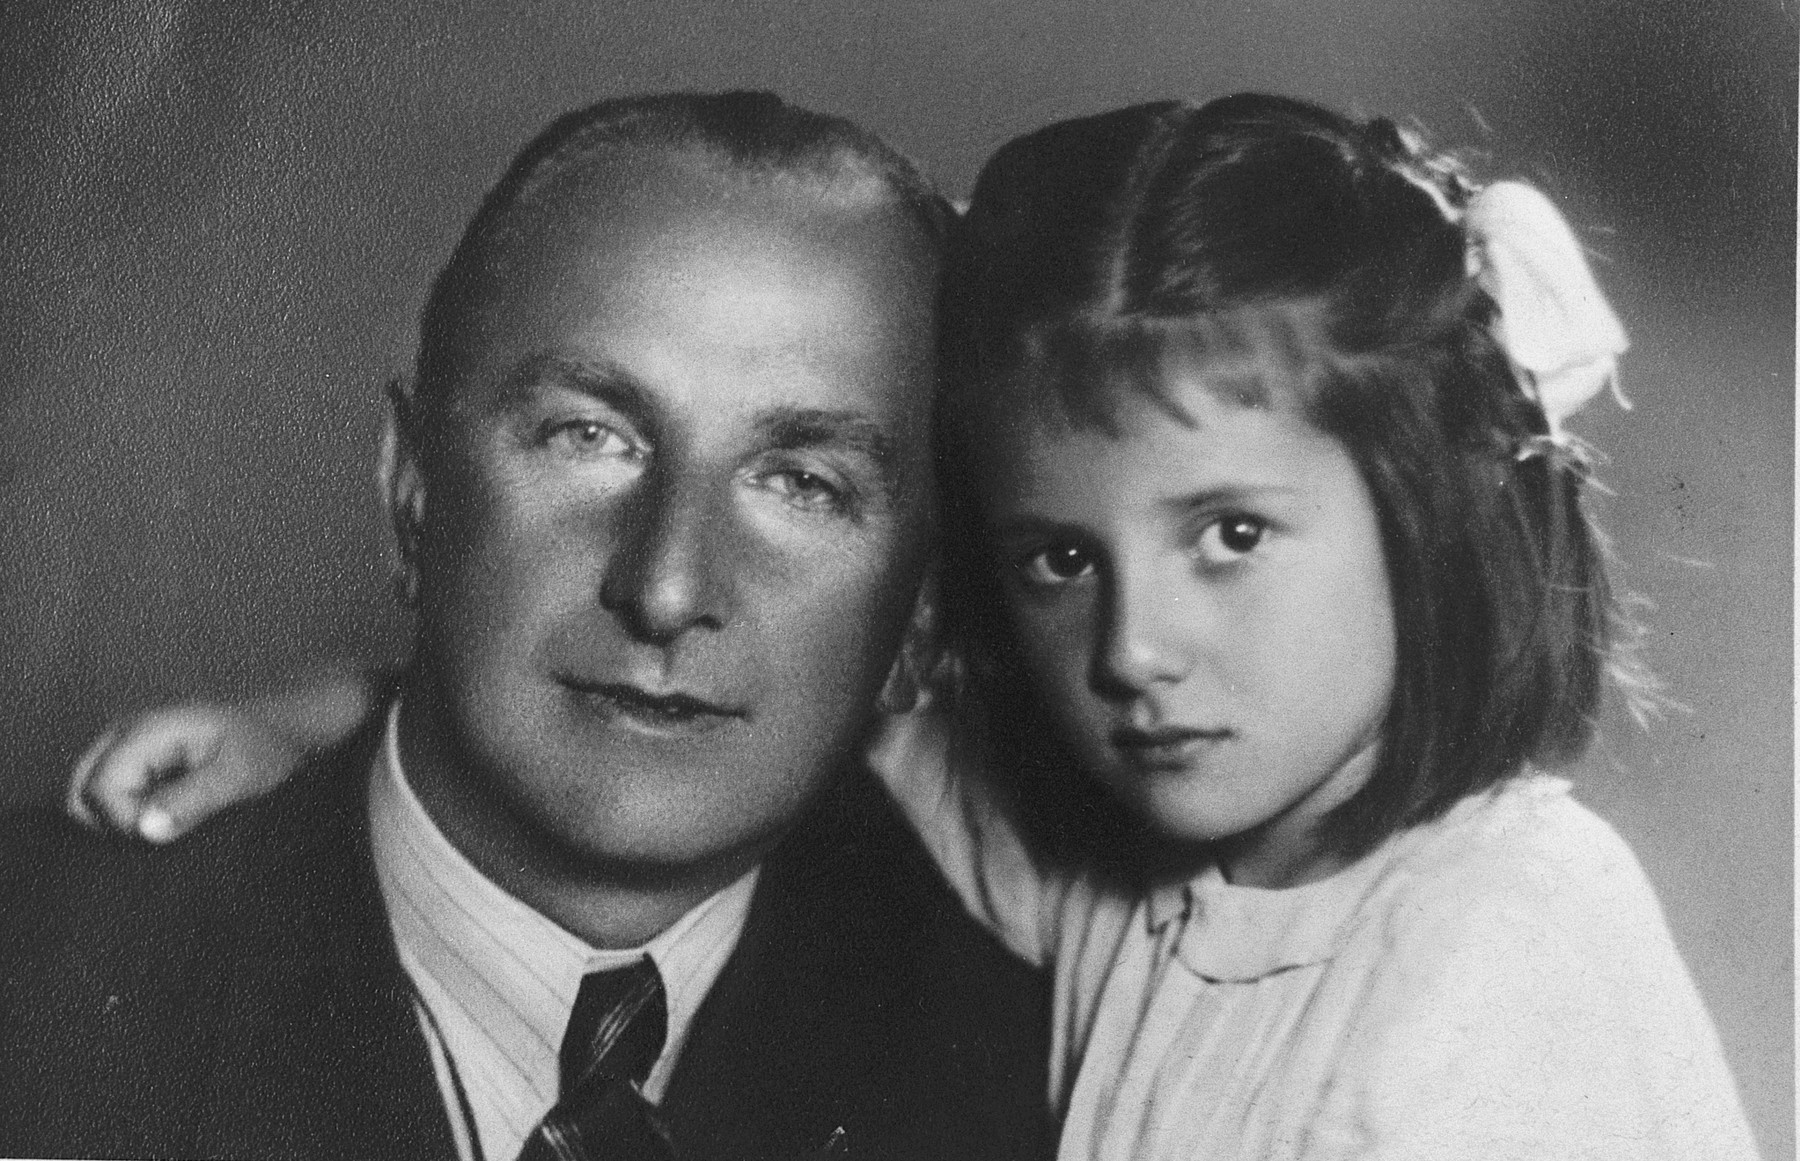 Close-up portrait of Jeanna Nachmia (alias Jovanka Rashic) with her rescuer, Veljco Rashic.